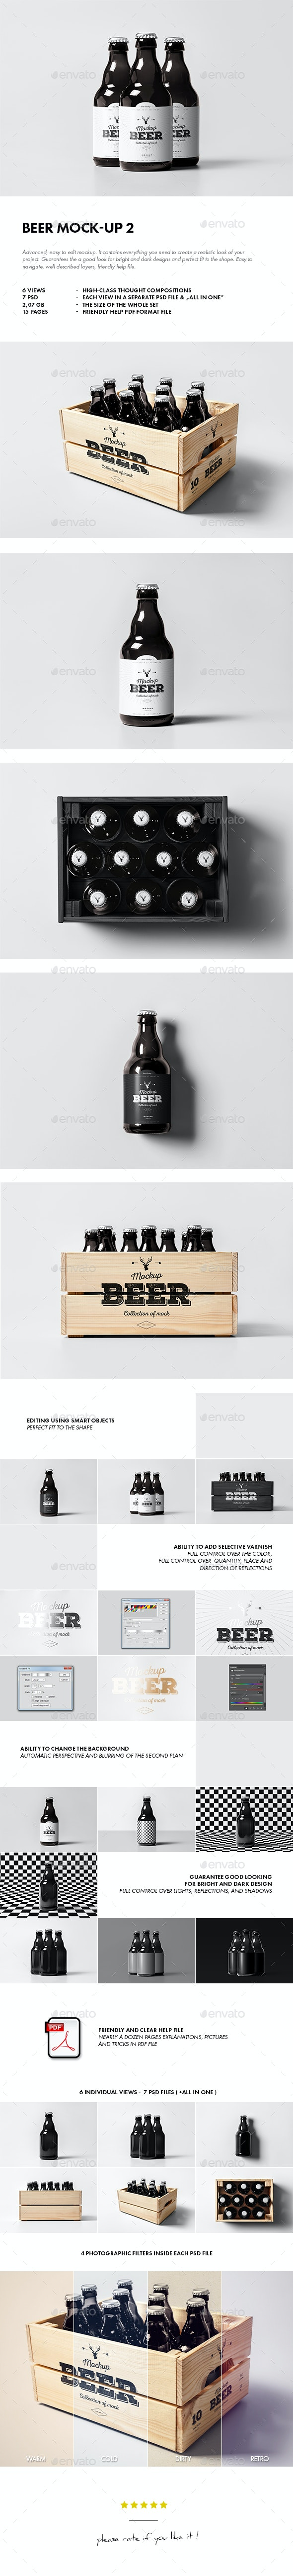 Beer Mock-up 2 - Food and Drink Packaging